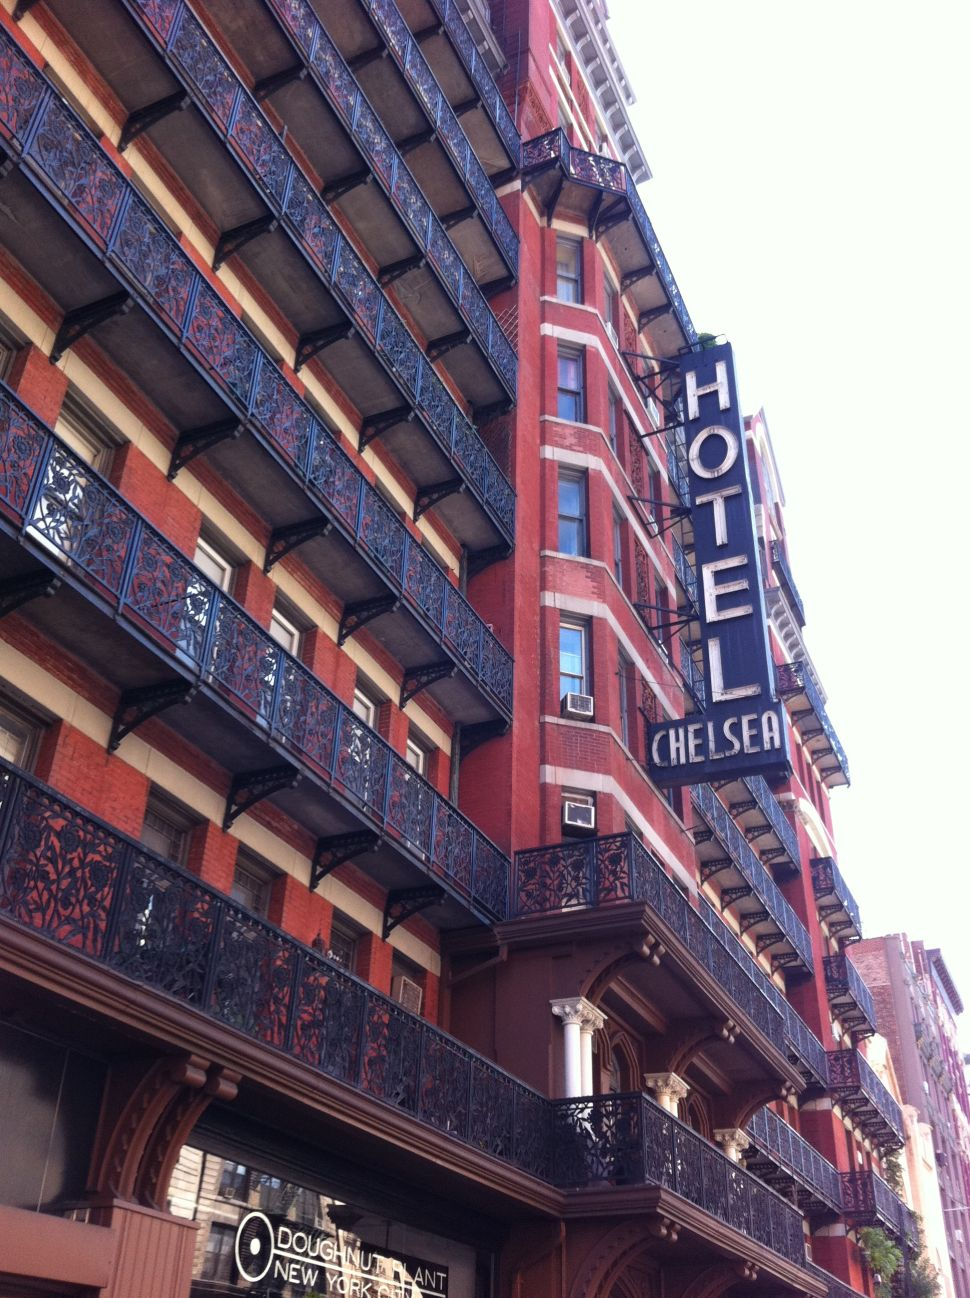 Hotelier Borrows Hotel Chelsea Name for Luxe Lodgings Group, Hopes Cachet Will Follow